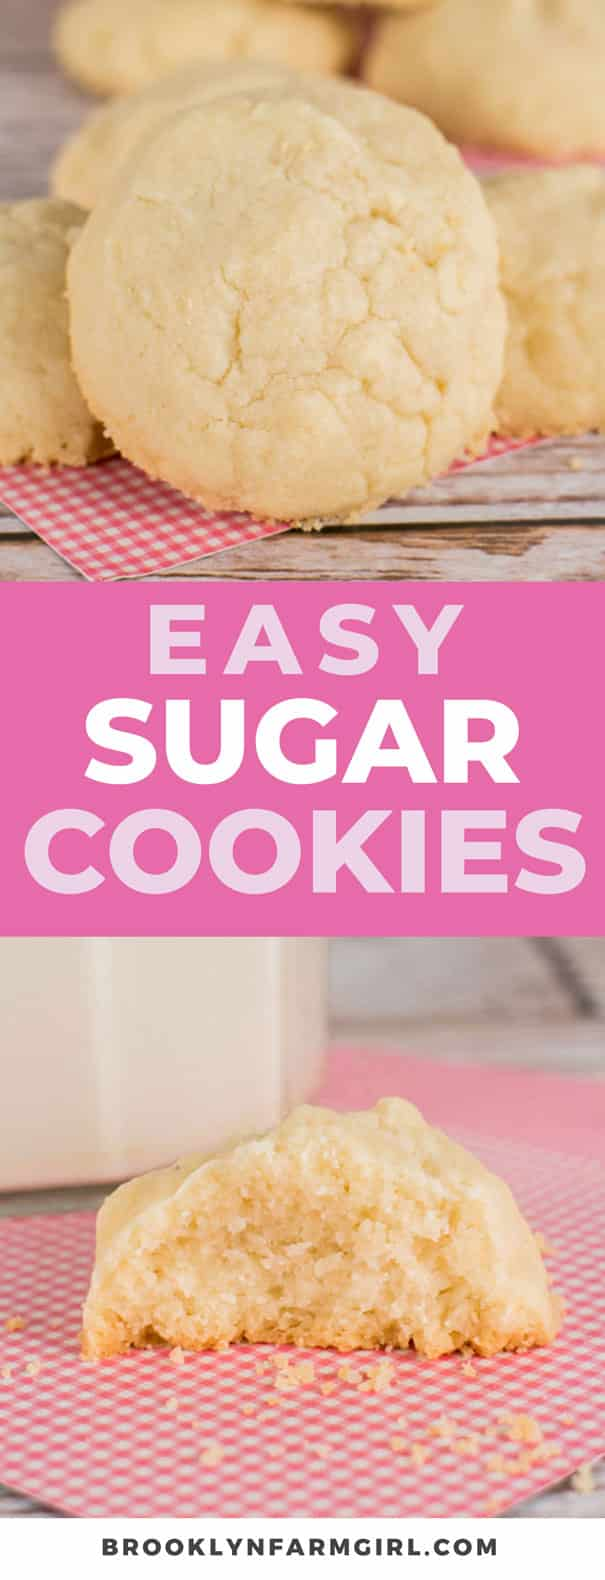 These super easy sugar cookies are soft, light, and they simply melt-in-your-mouth with each bite. These are one of my family's favorite Christmas cookies!